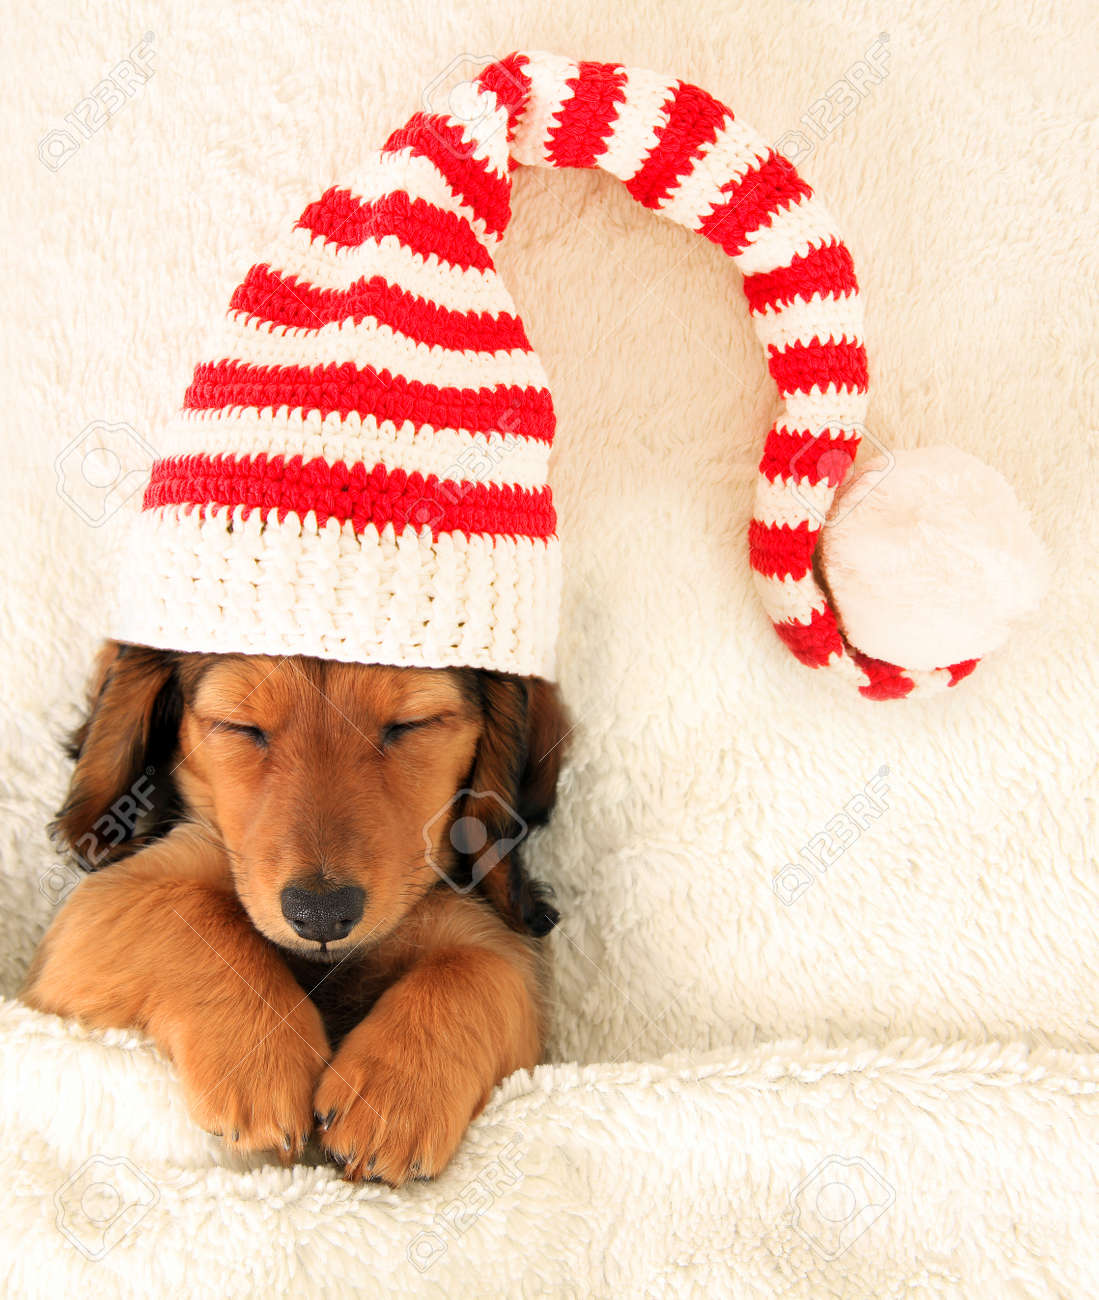 Sleeping dachshund puppy wearing a Christmas elf hat. Stock Photo - 31427404 5c0350bb6812